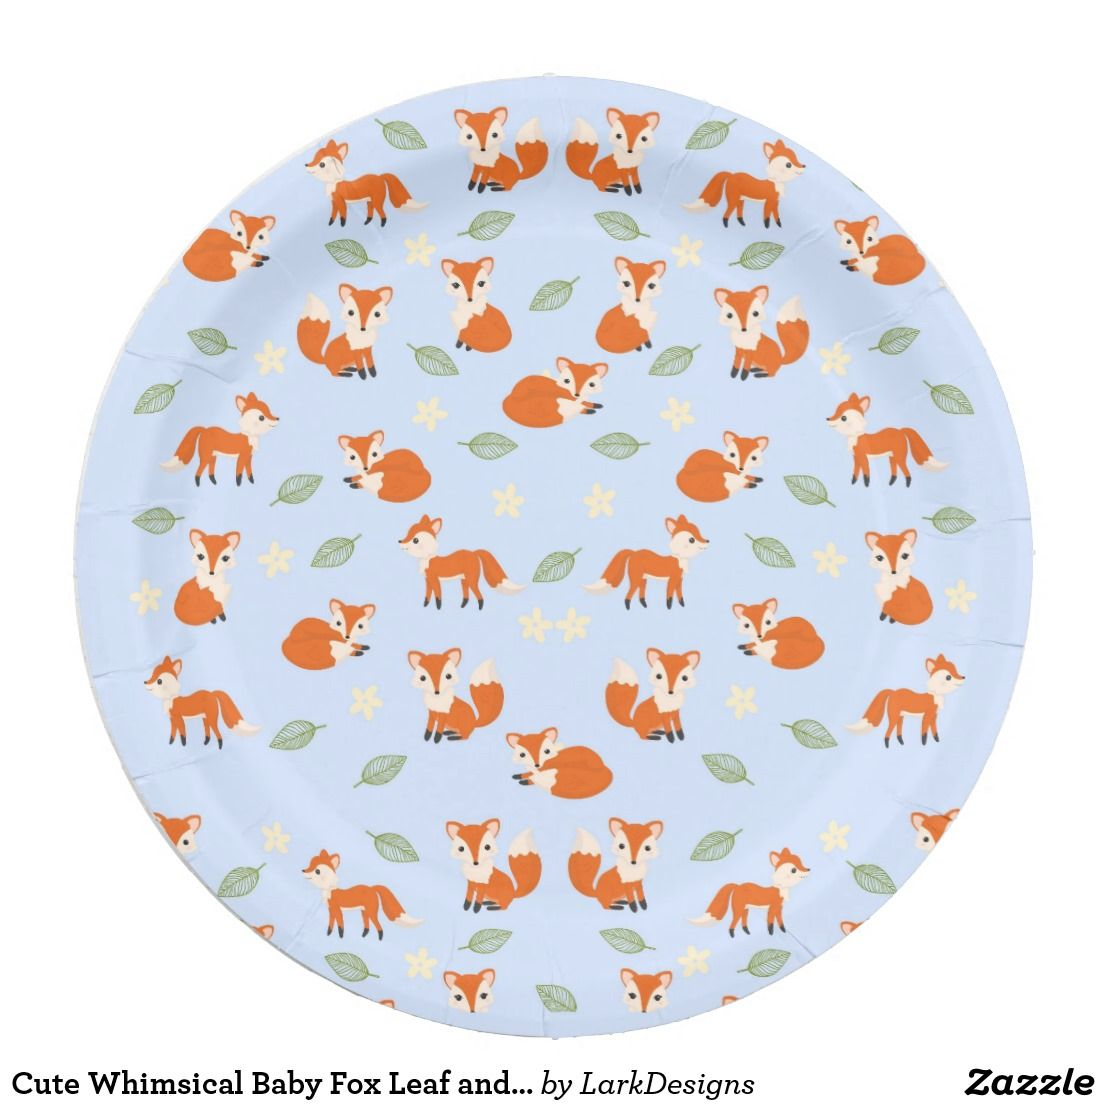 Cute Whimsical Baby Fox Leaf and Flower Pattern Paper Plate  sc 1 st  Pinterest & Cute Whimsical Baby Fox Leaf and Flower Pattern Paper Plate ...